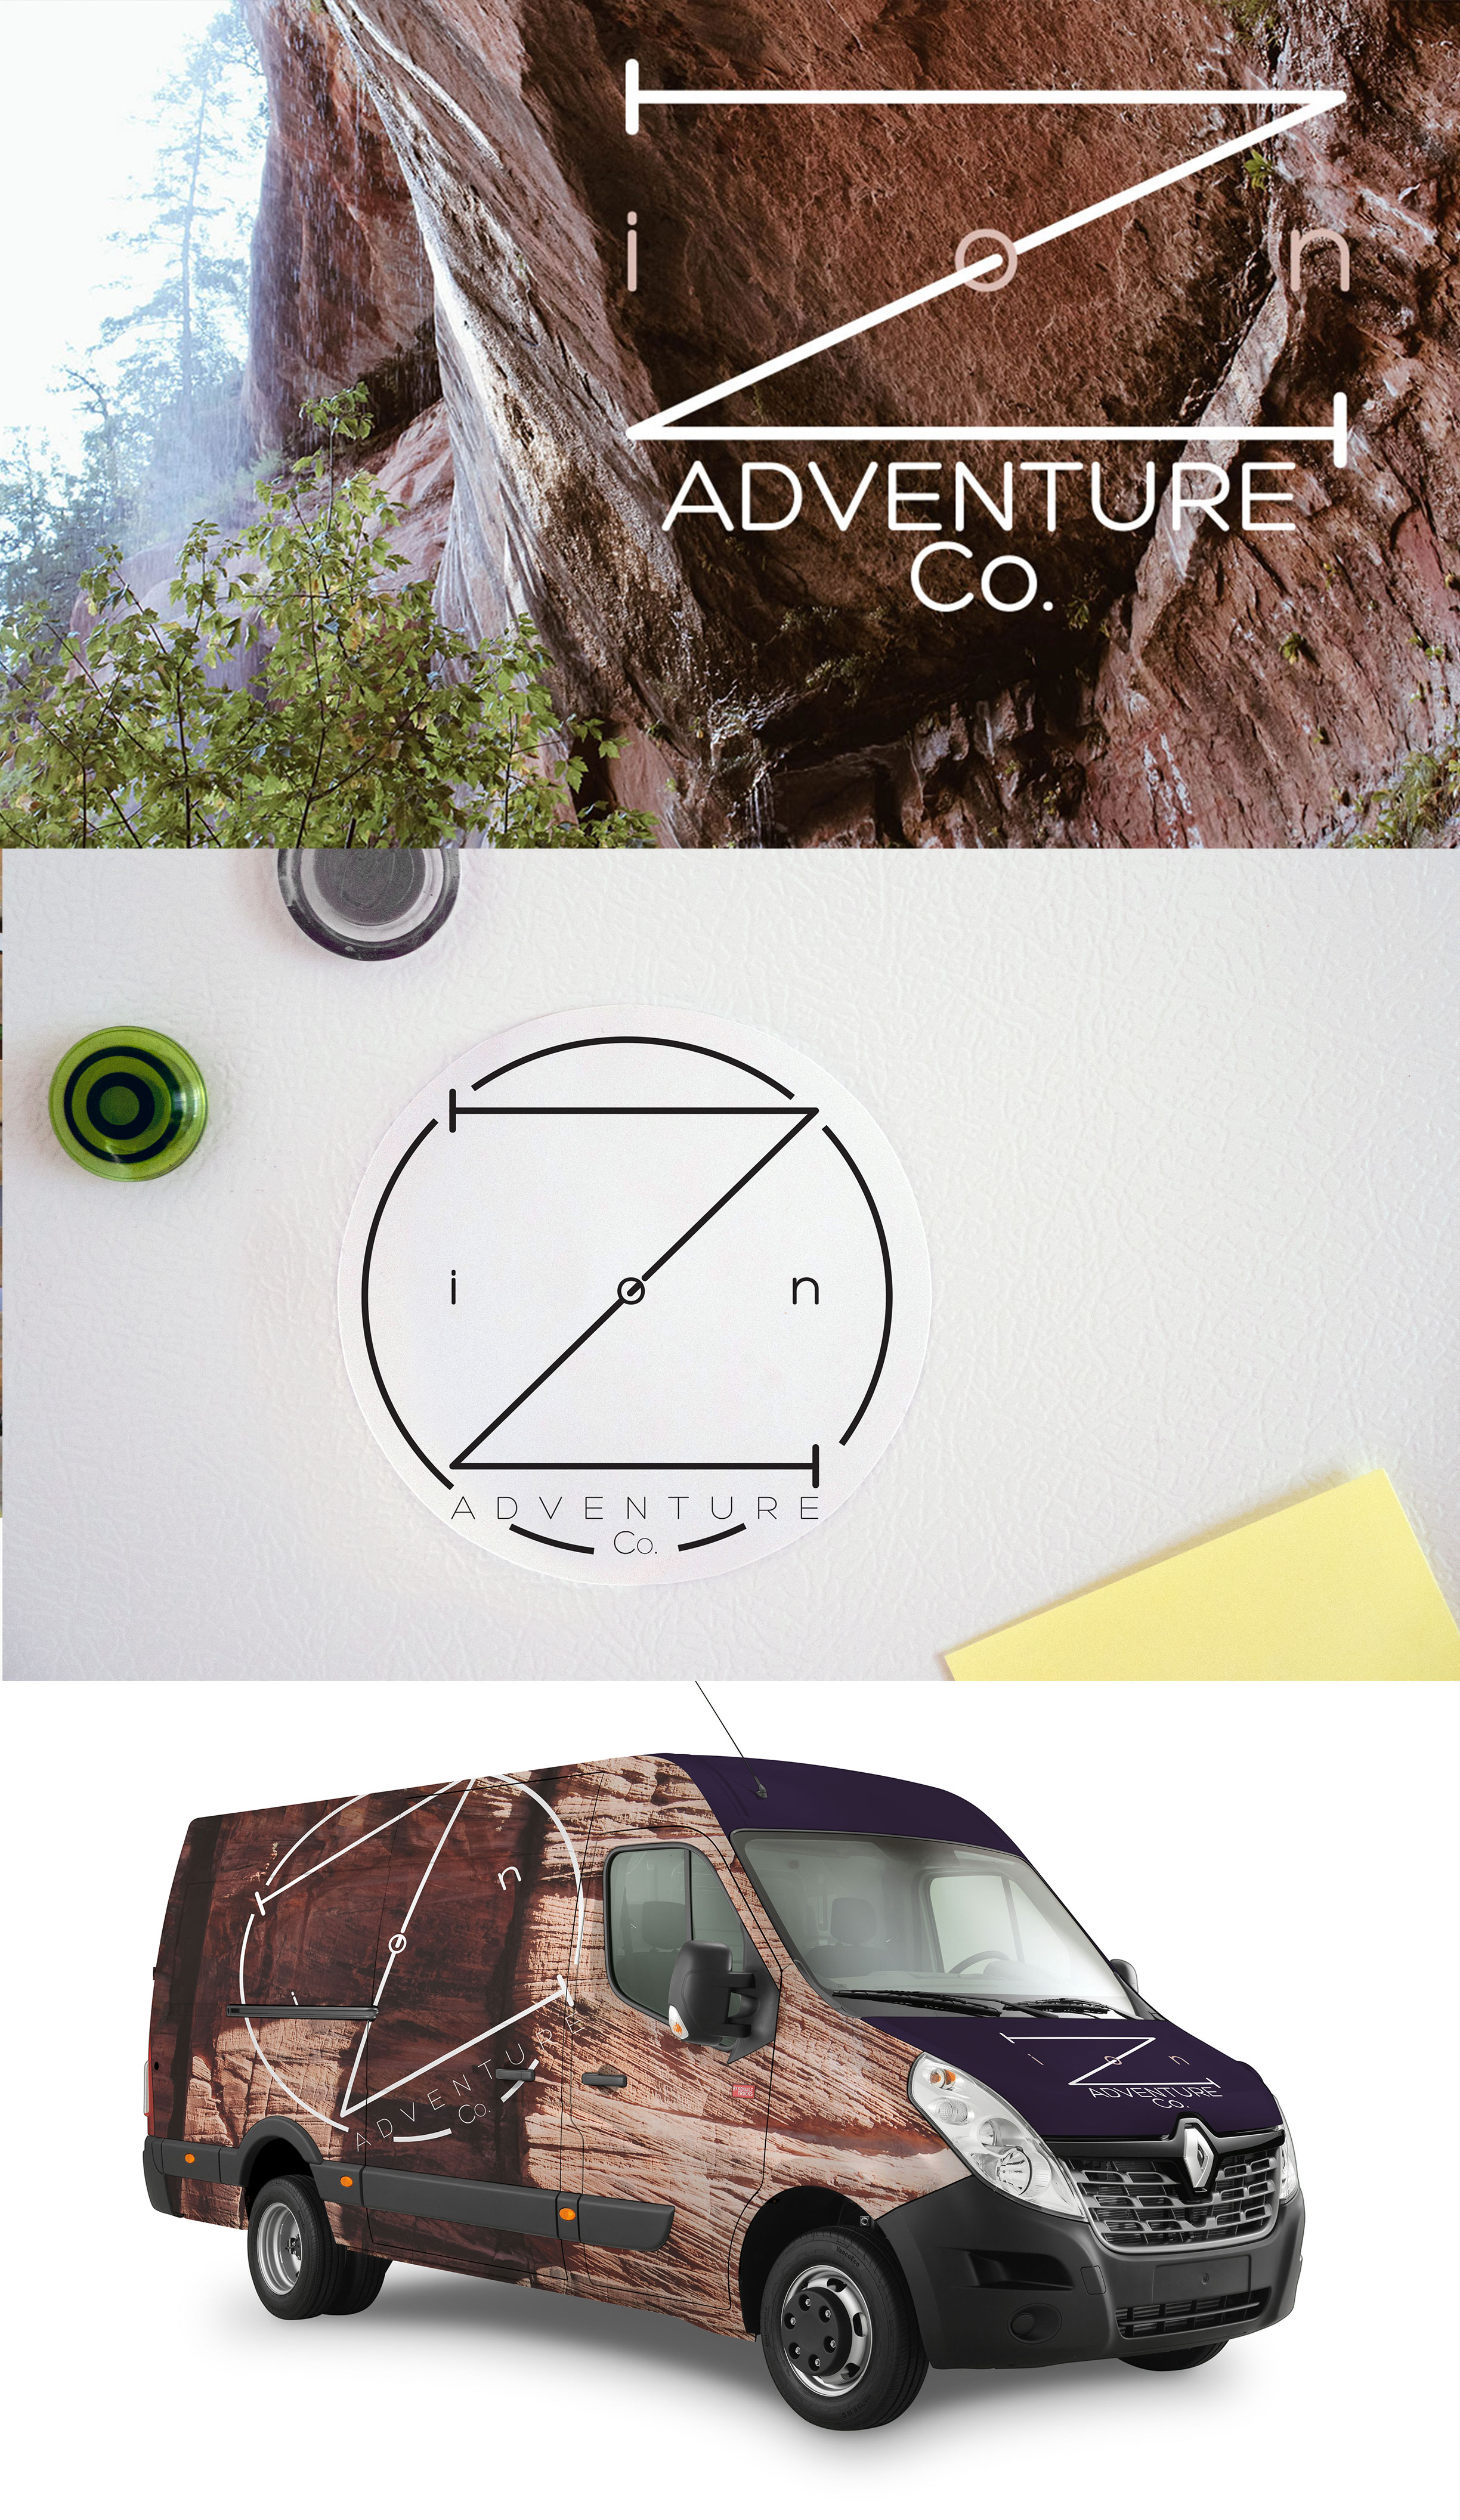 Conceptual branding inspired by Zion National Park